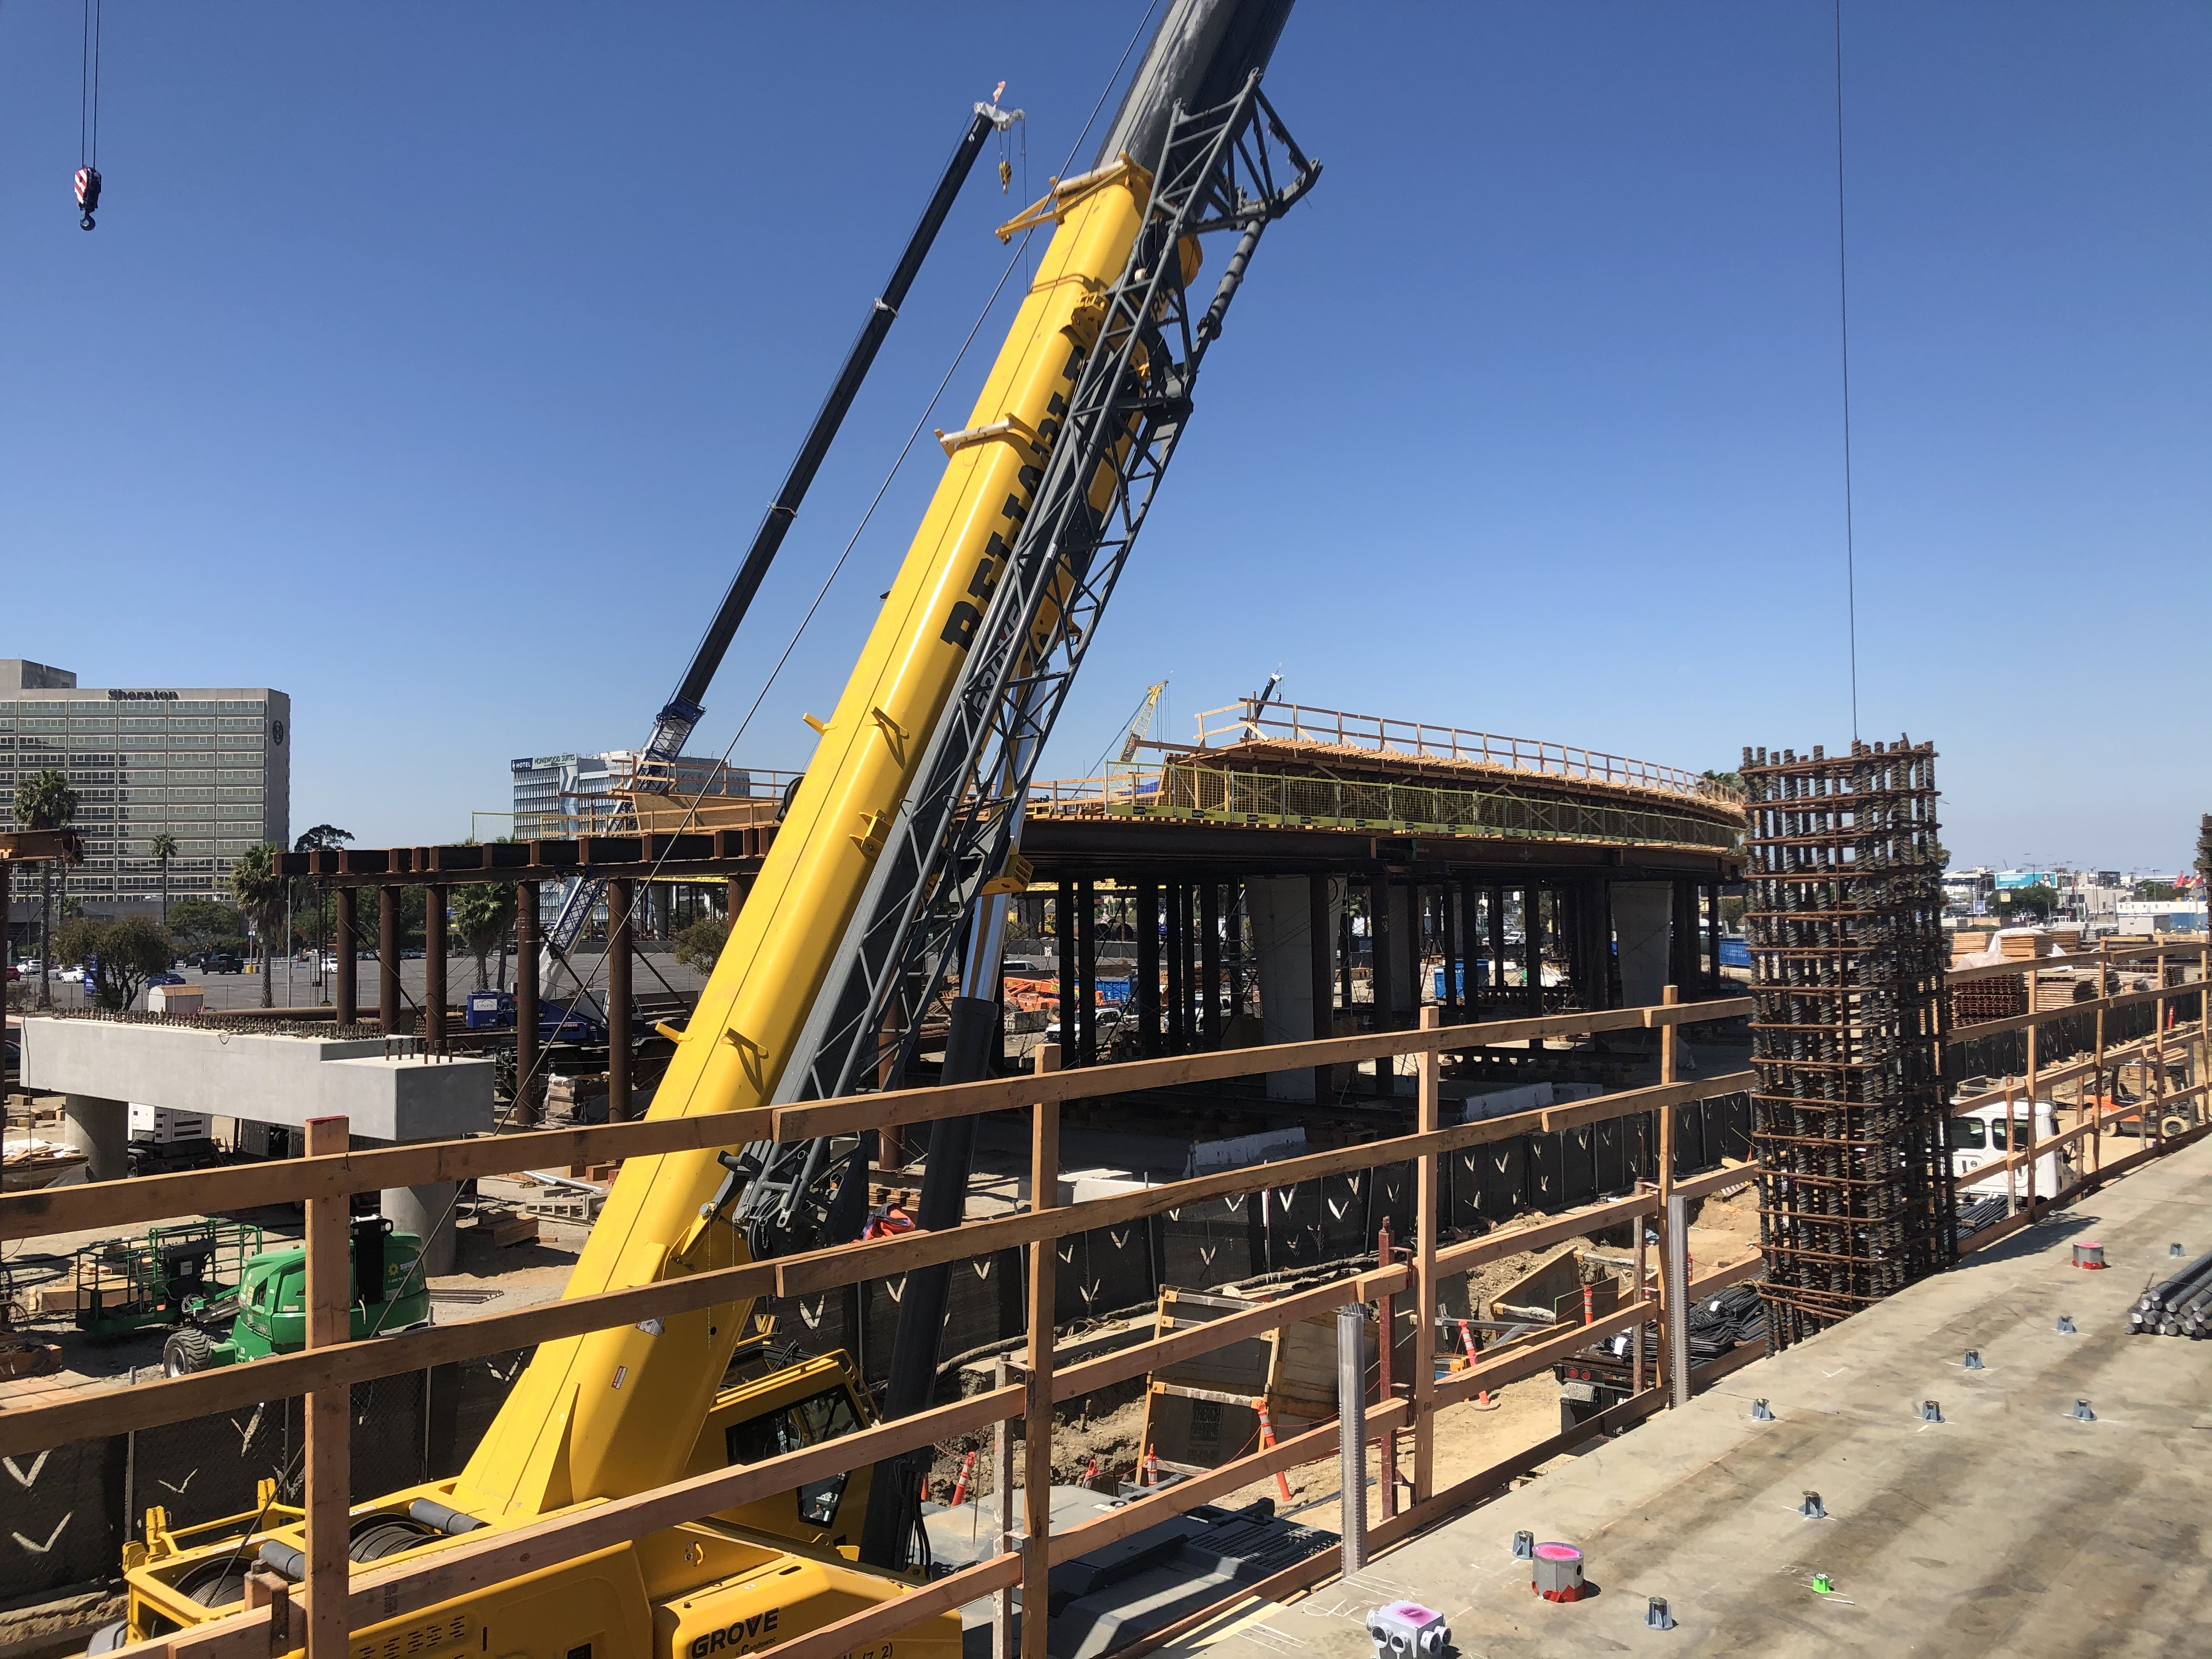 A view of the train guideway next to the Intermodal Transportation Facility-West.